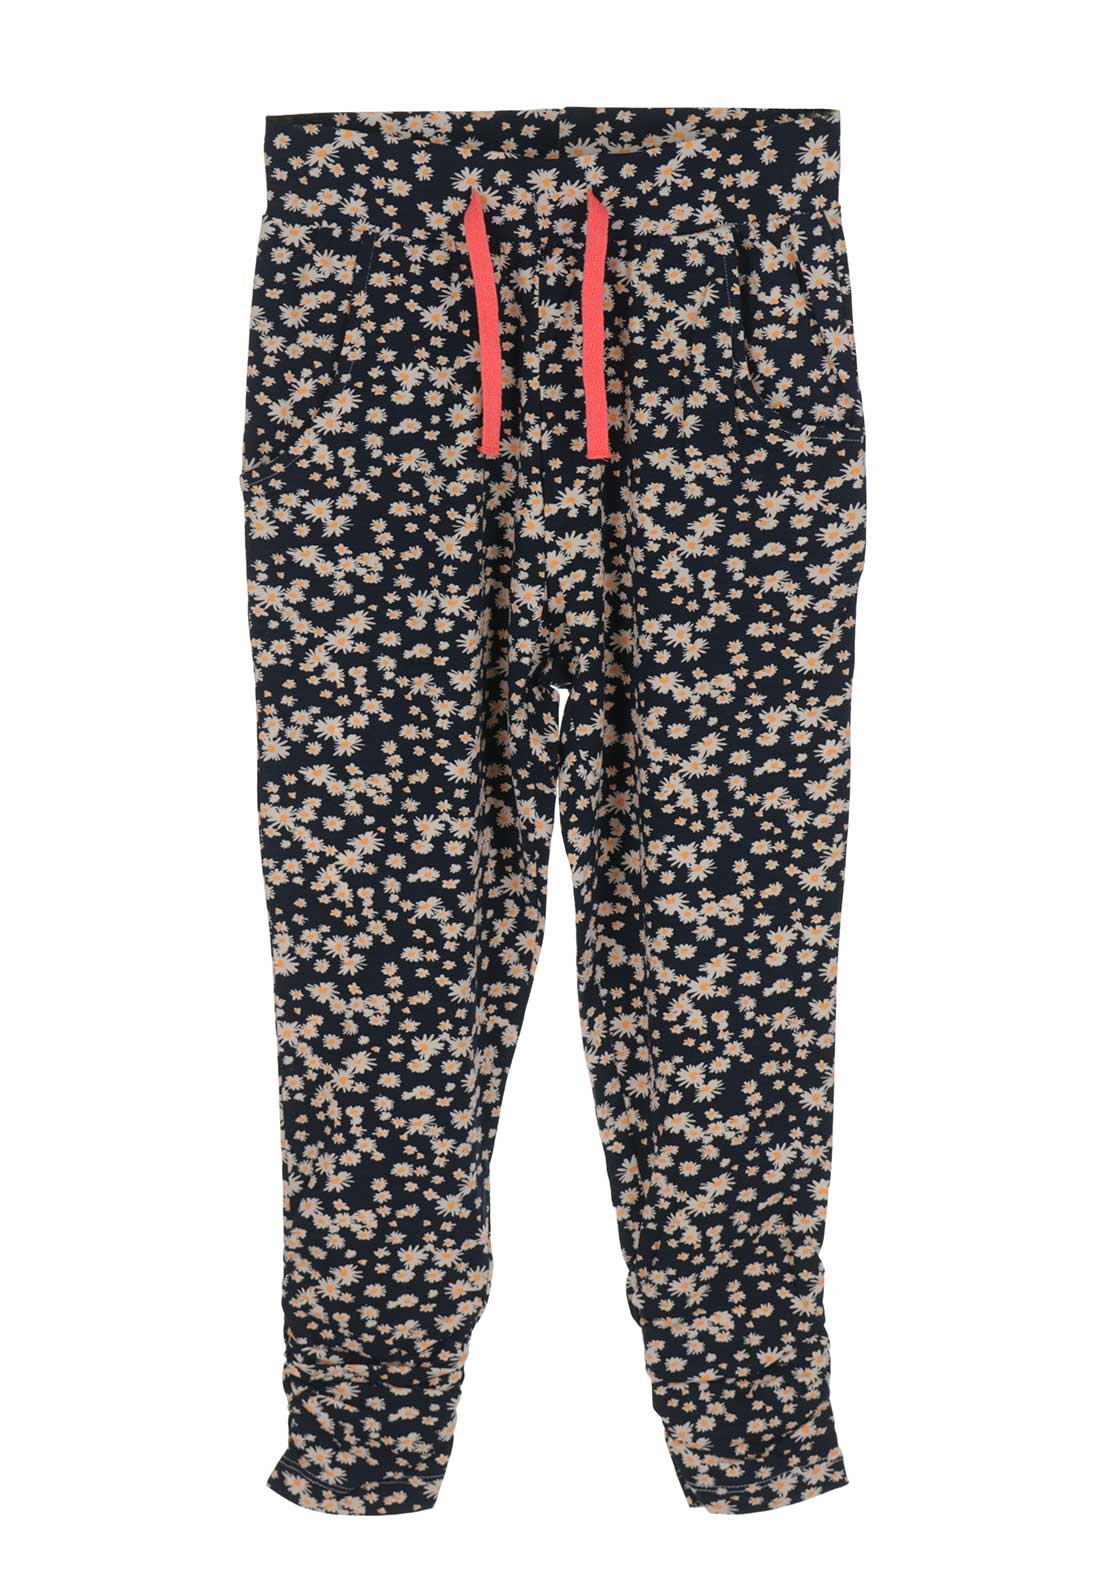 Name It Girls Kerry Flower Jersey Trousers, Navy and White